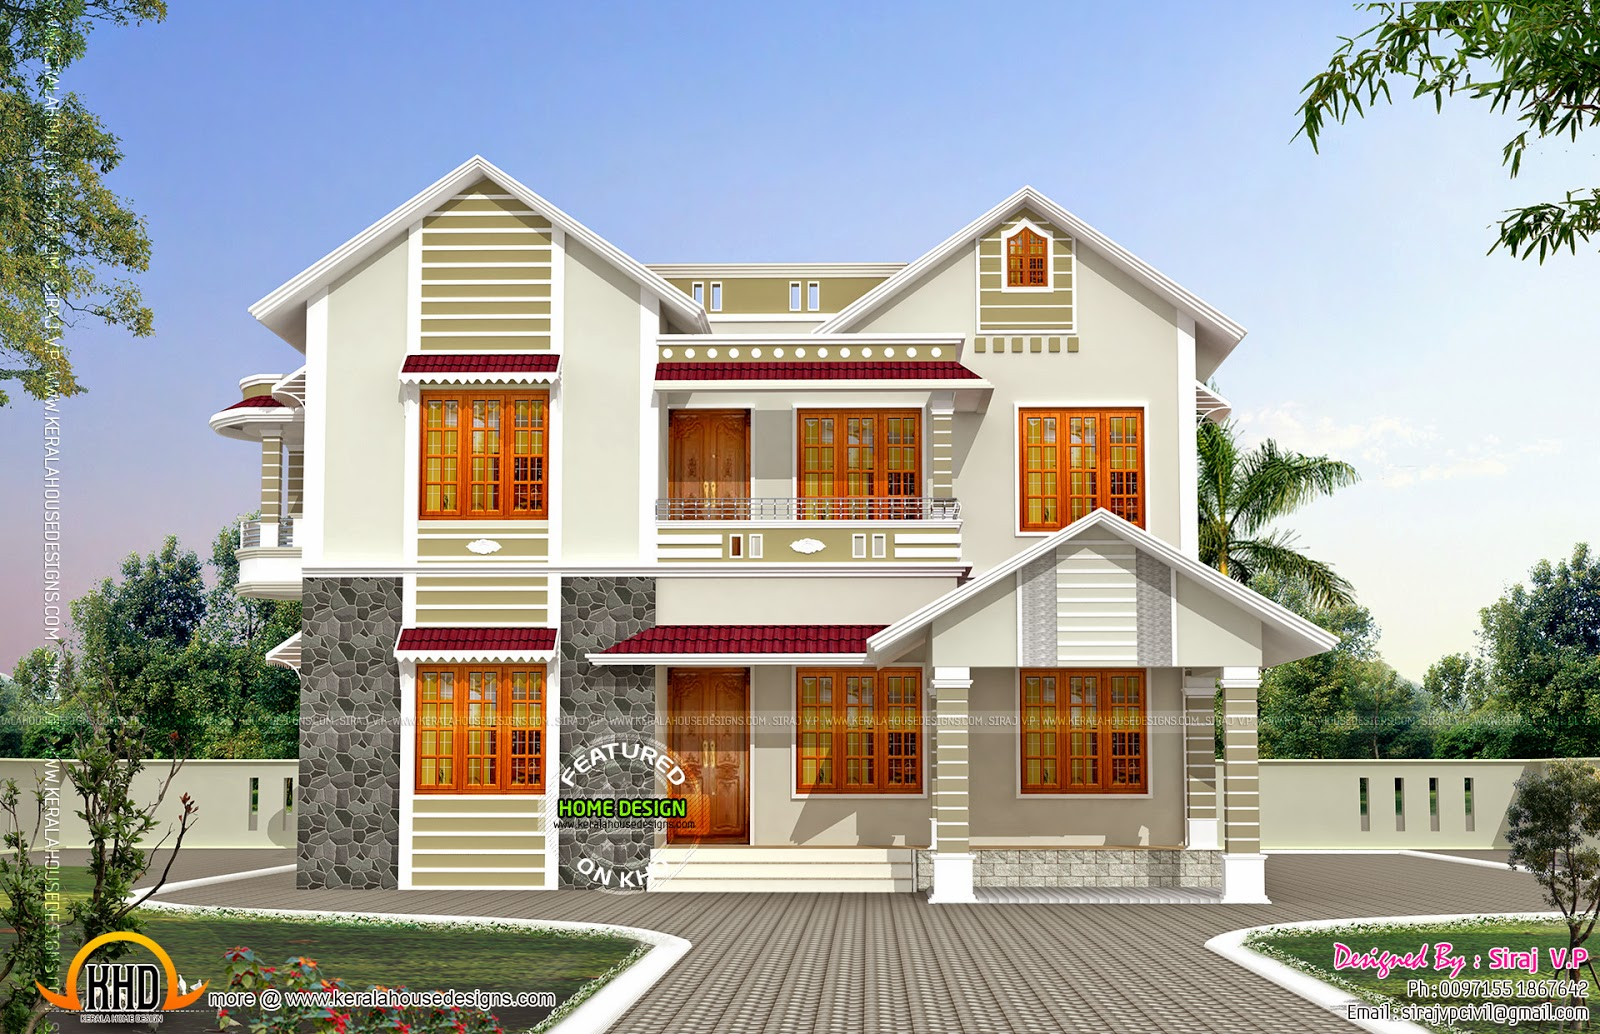 10 home design front view images modern house design for House plans for homes with a view